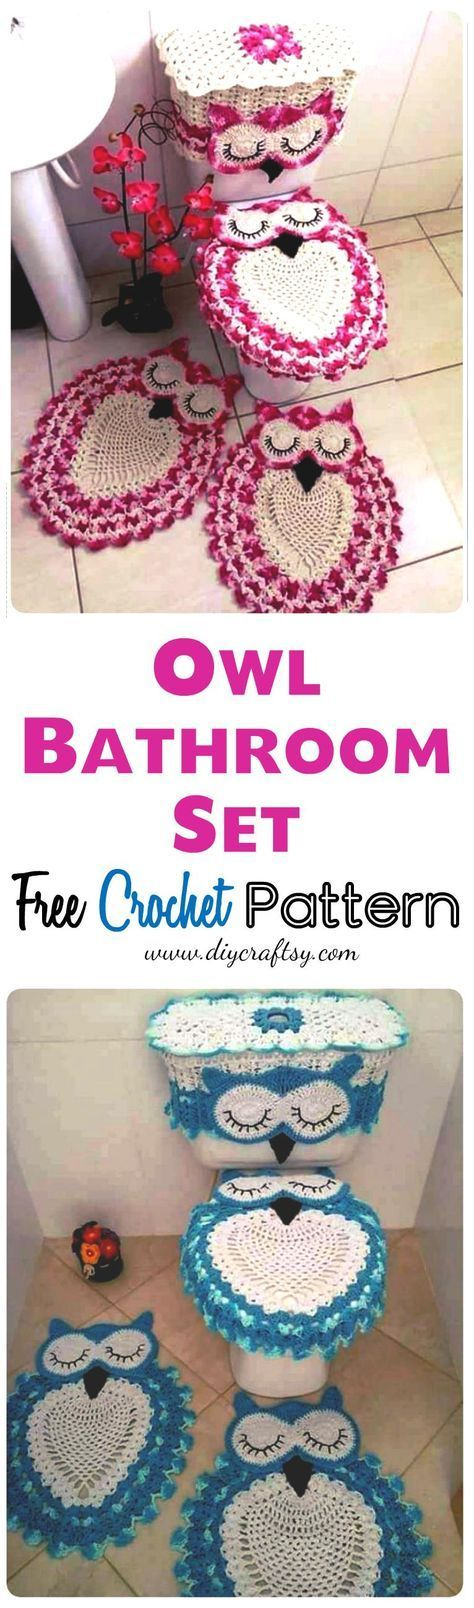 the whole assets of this entire crochet owl bathroom set and you will just love to crochet them with the help of provided free crochet pattern! You can